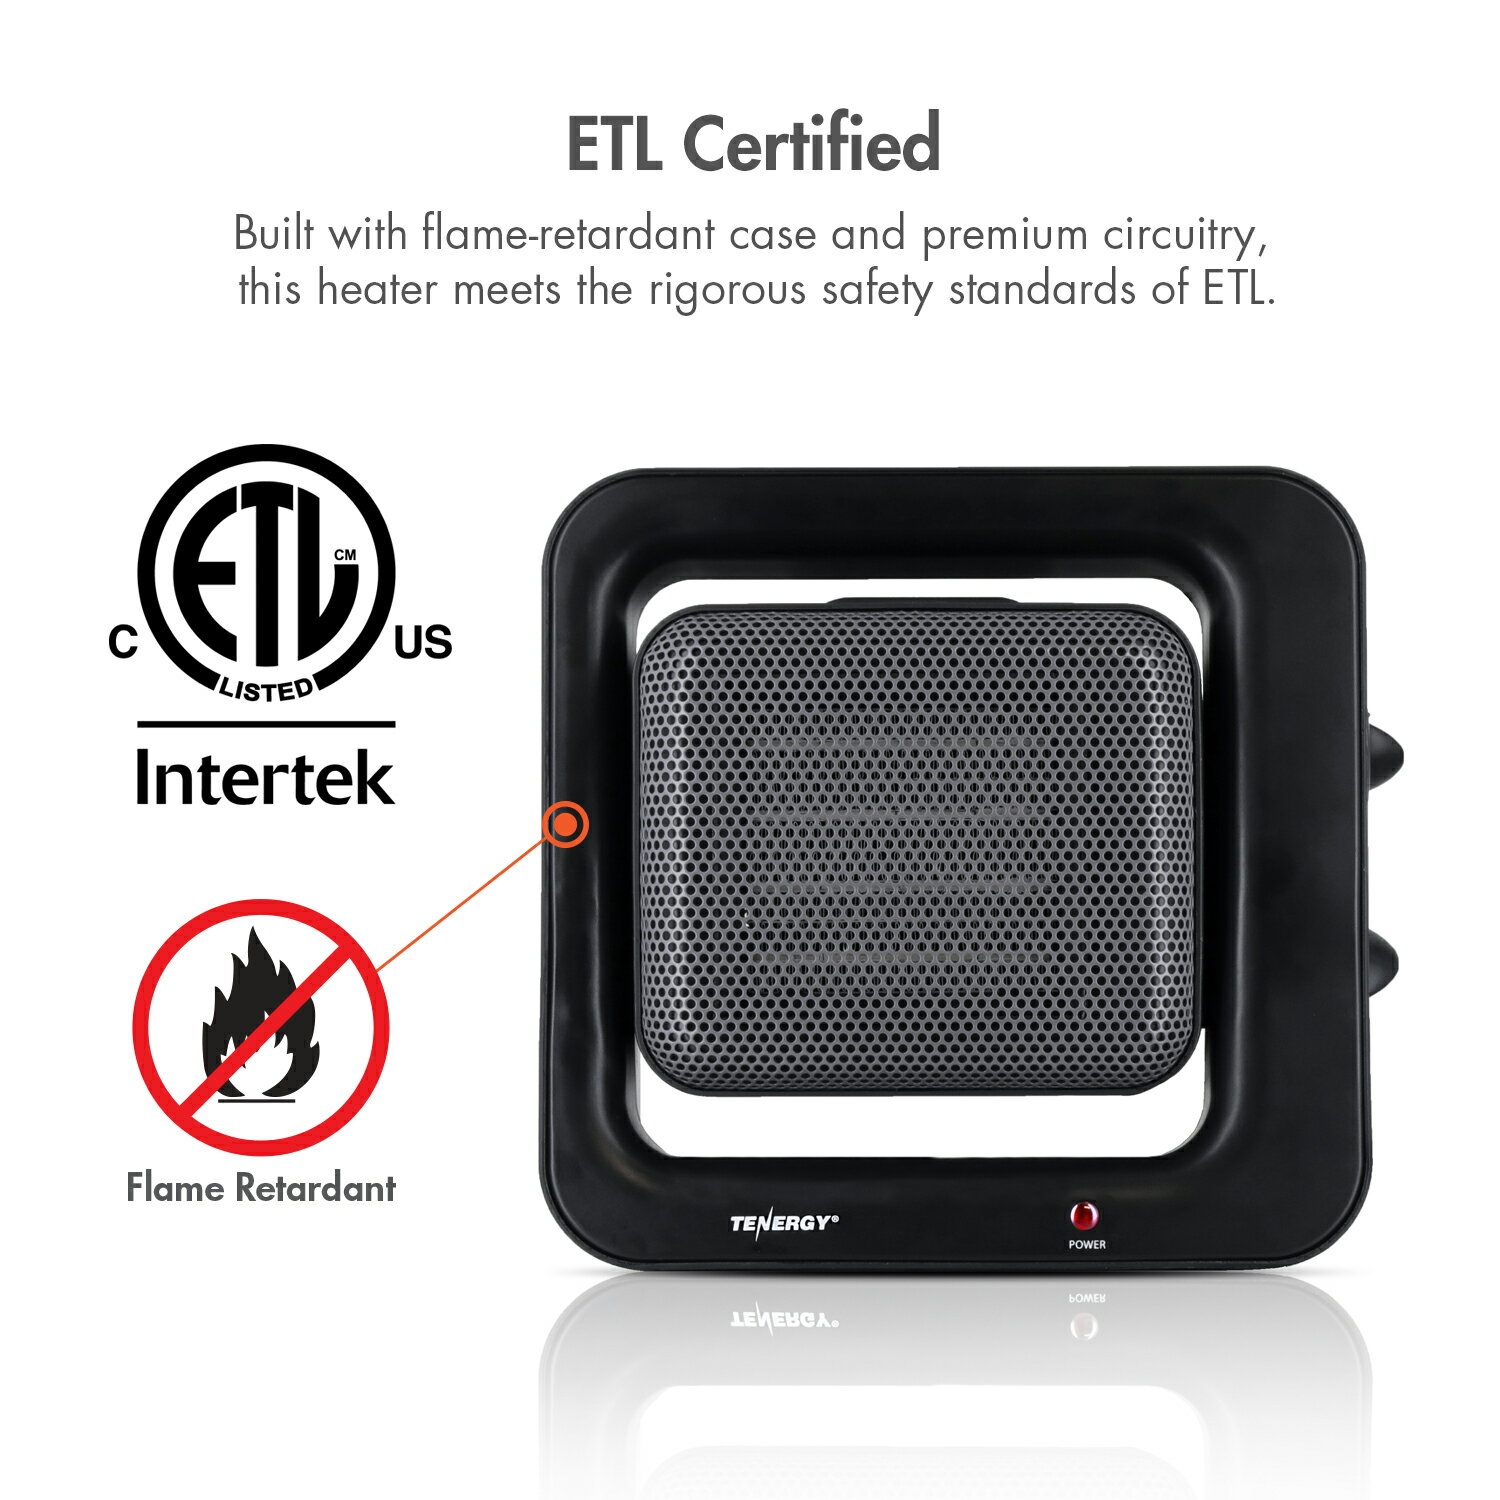 Tenergy Portable Space Heaters With Adjule Thermostat 900w 1500w Ptc Ceramic Heater Auto Shut Off